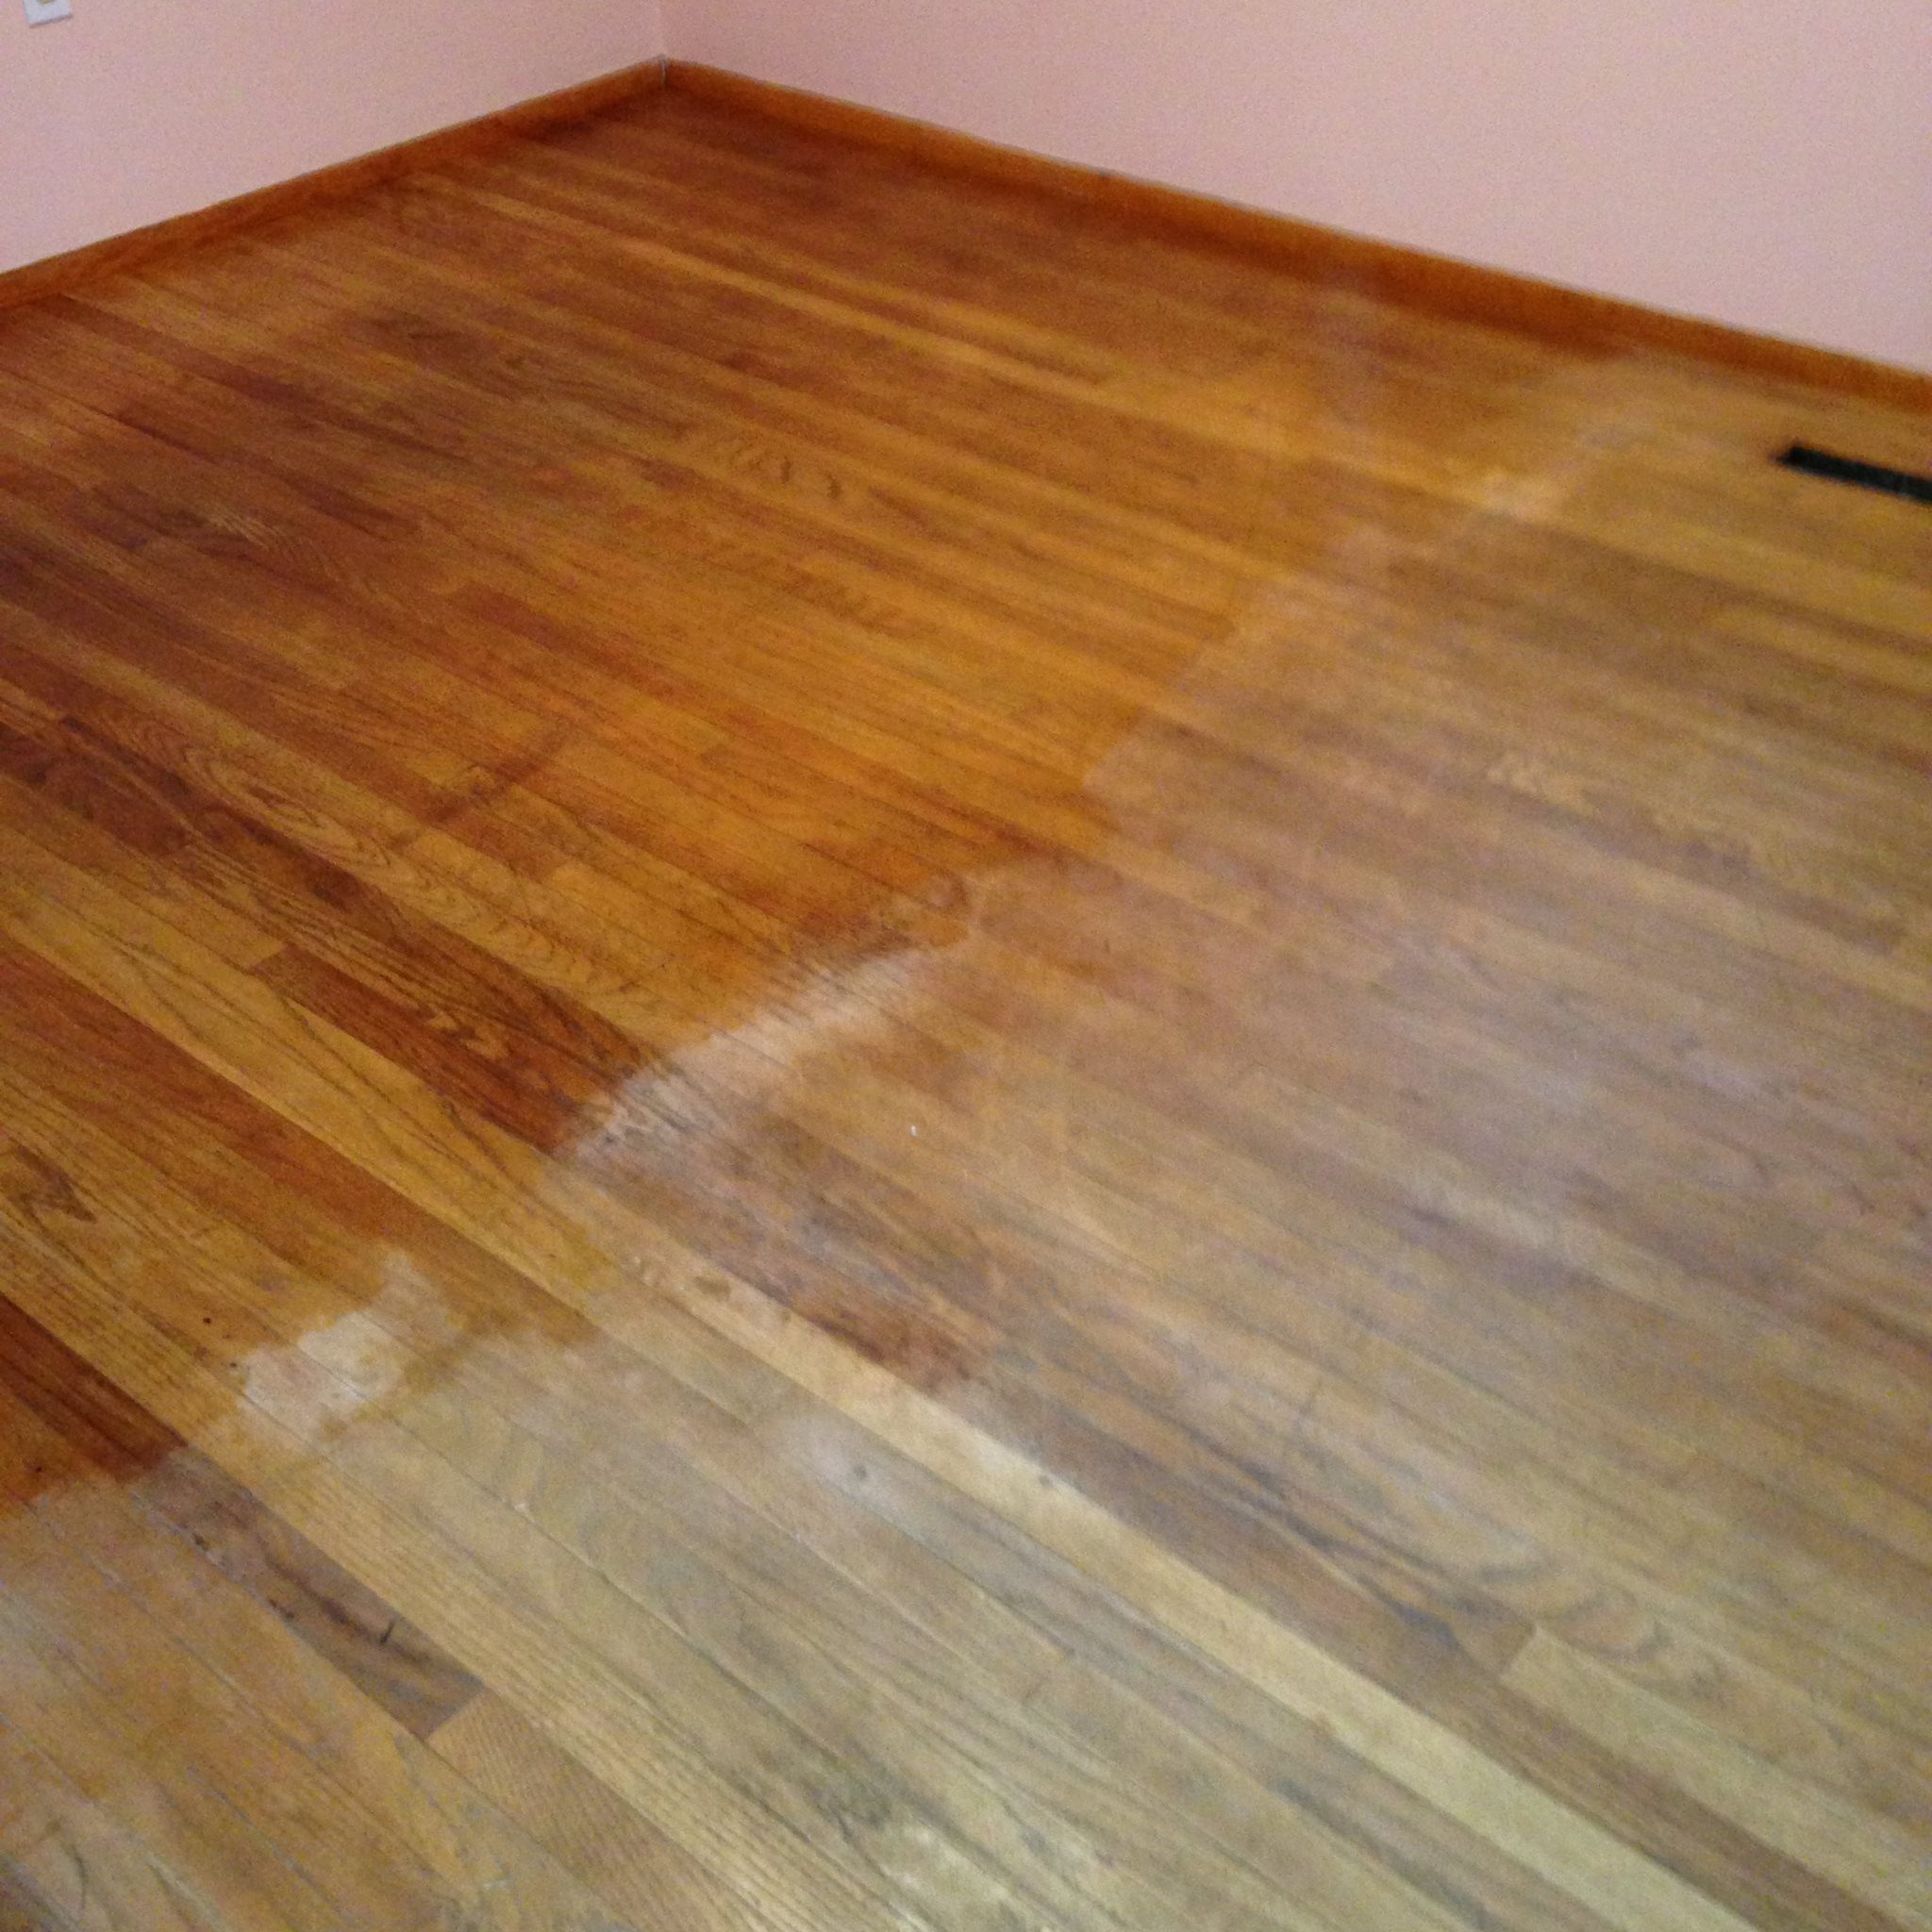 finish hardwood floors yourself of 15 wood floor hacks every homeowner needs to know intended for wood floor hacks 15